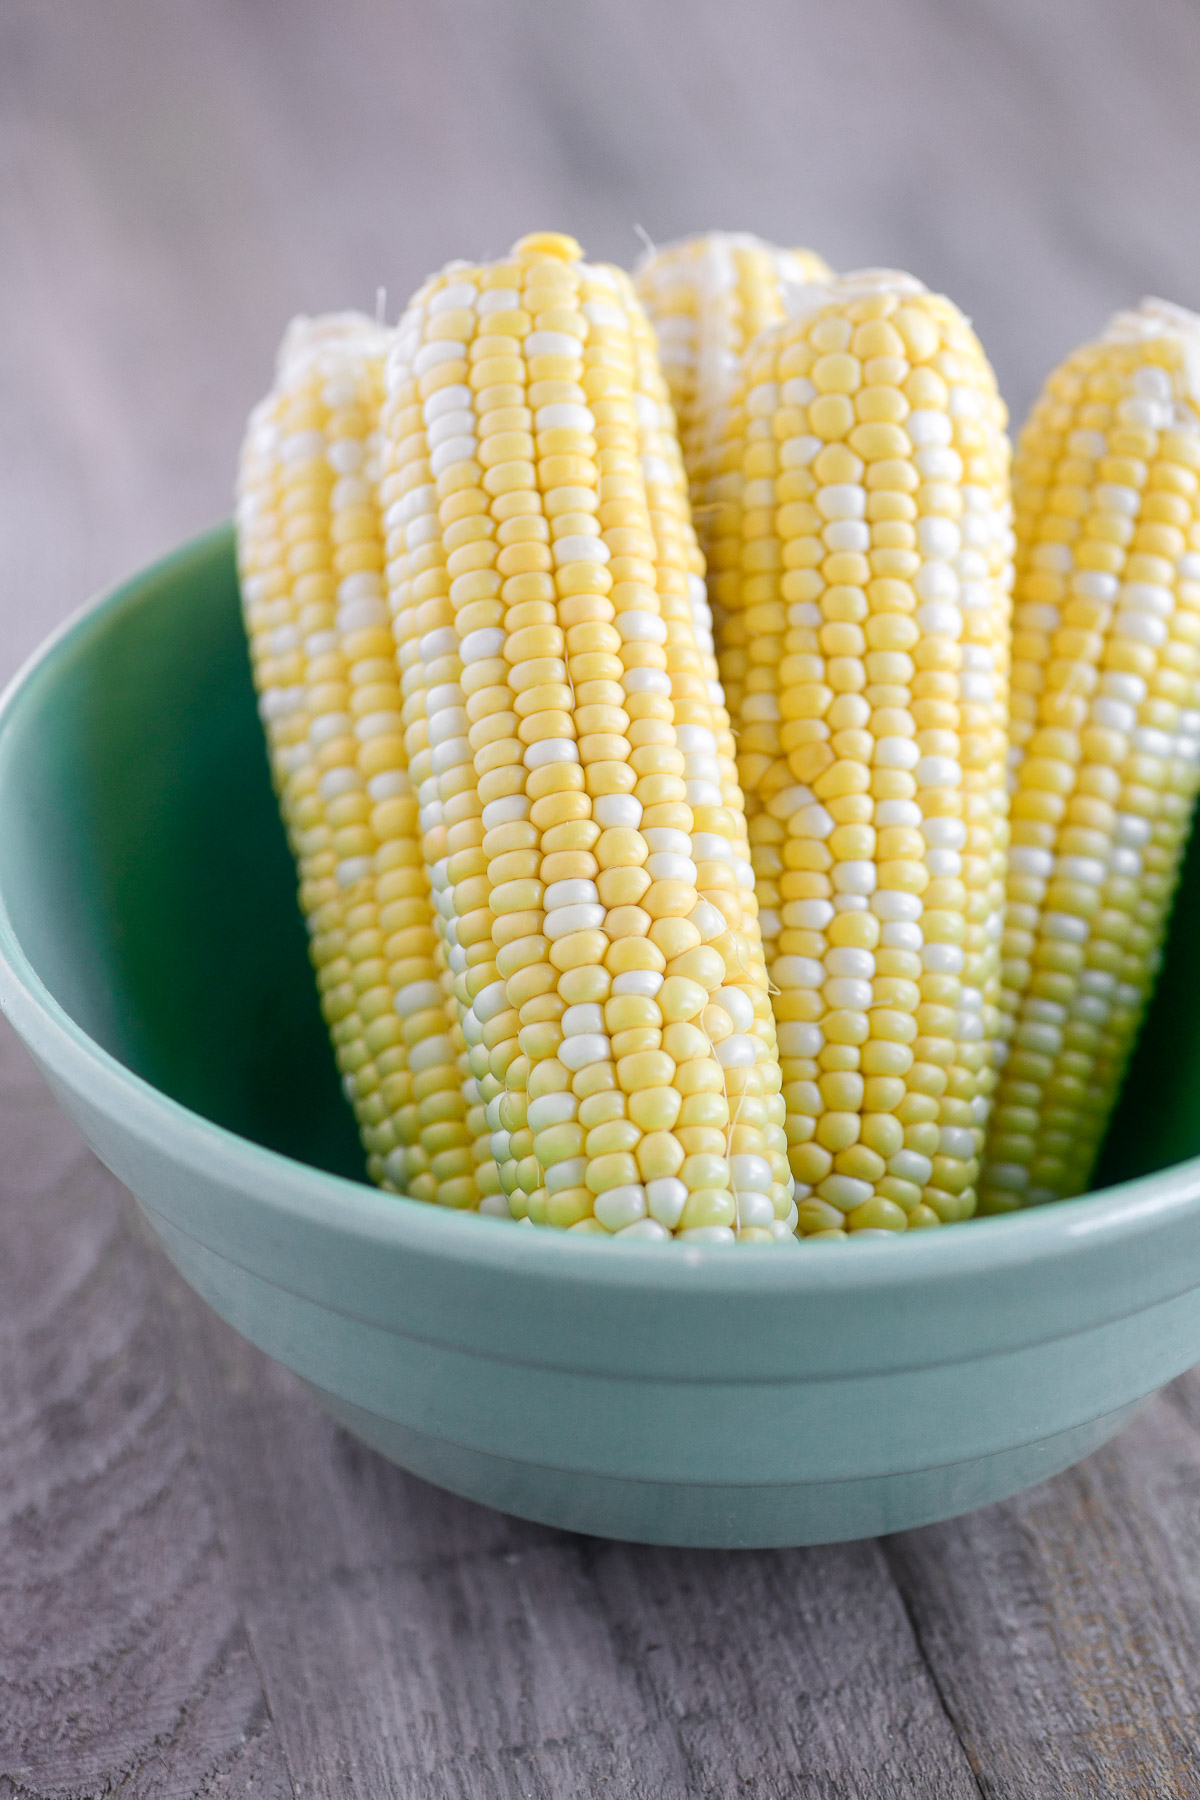 corn on the cob in a green bowl